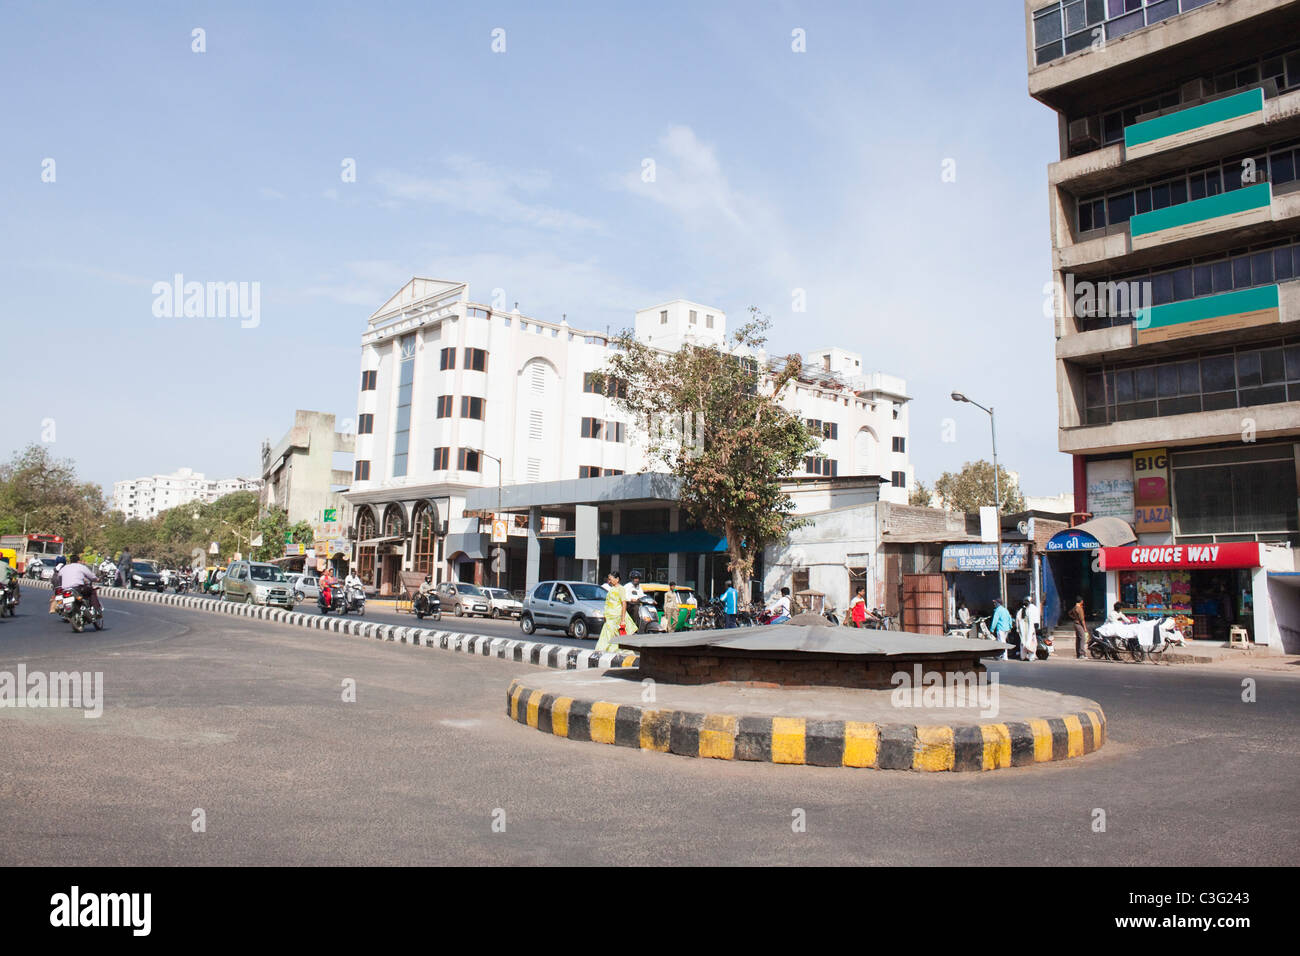 Buildings in a city, Ahmedabad, Gujarat, India Stock Photo